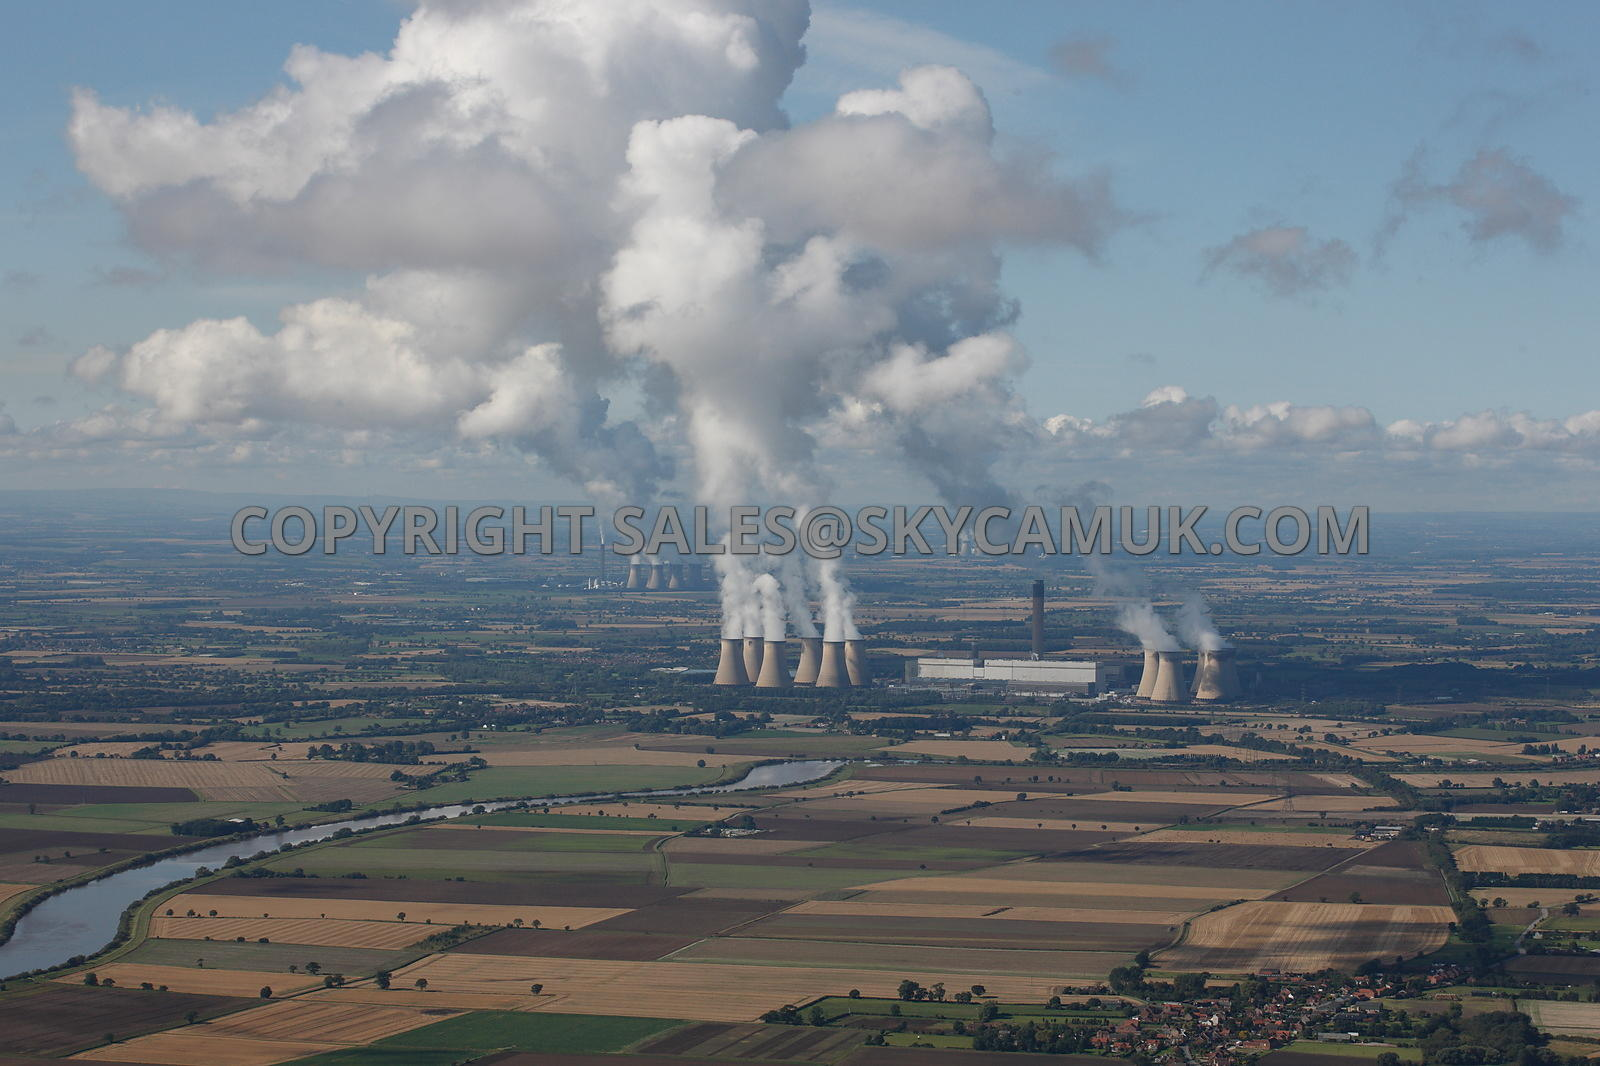 Yorkshire aerial photograph of Three Power Stations venting steam plumes Drax's Eggborough Ferrybridge Stations and River Ouse